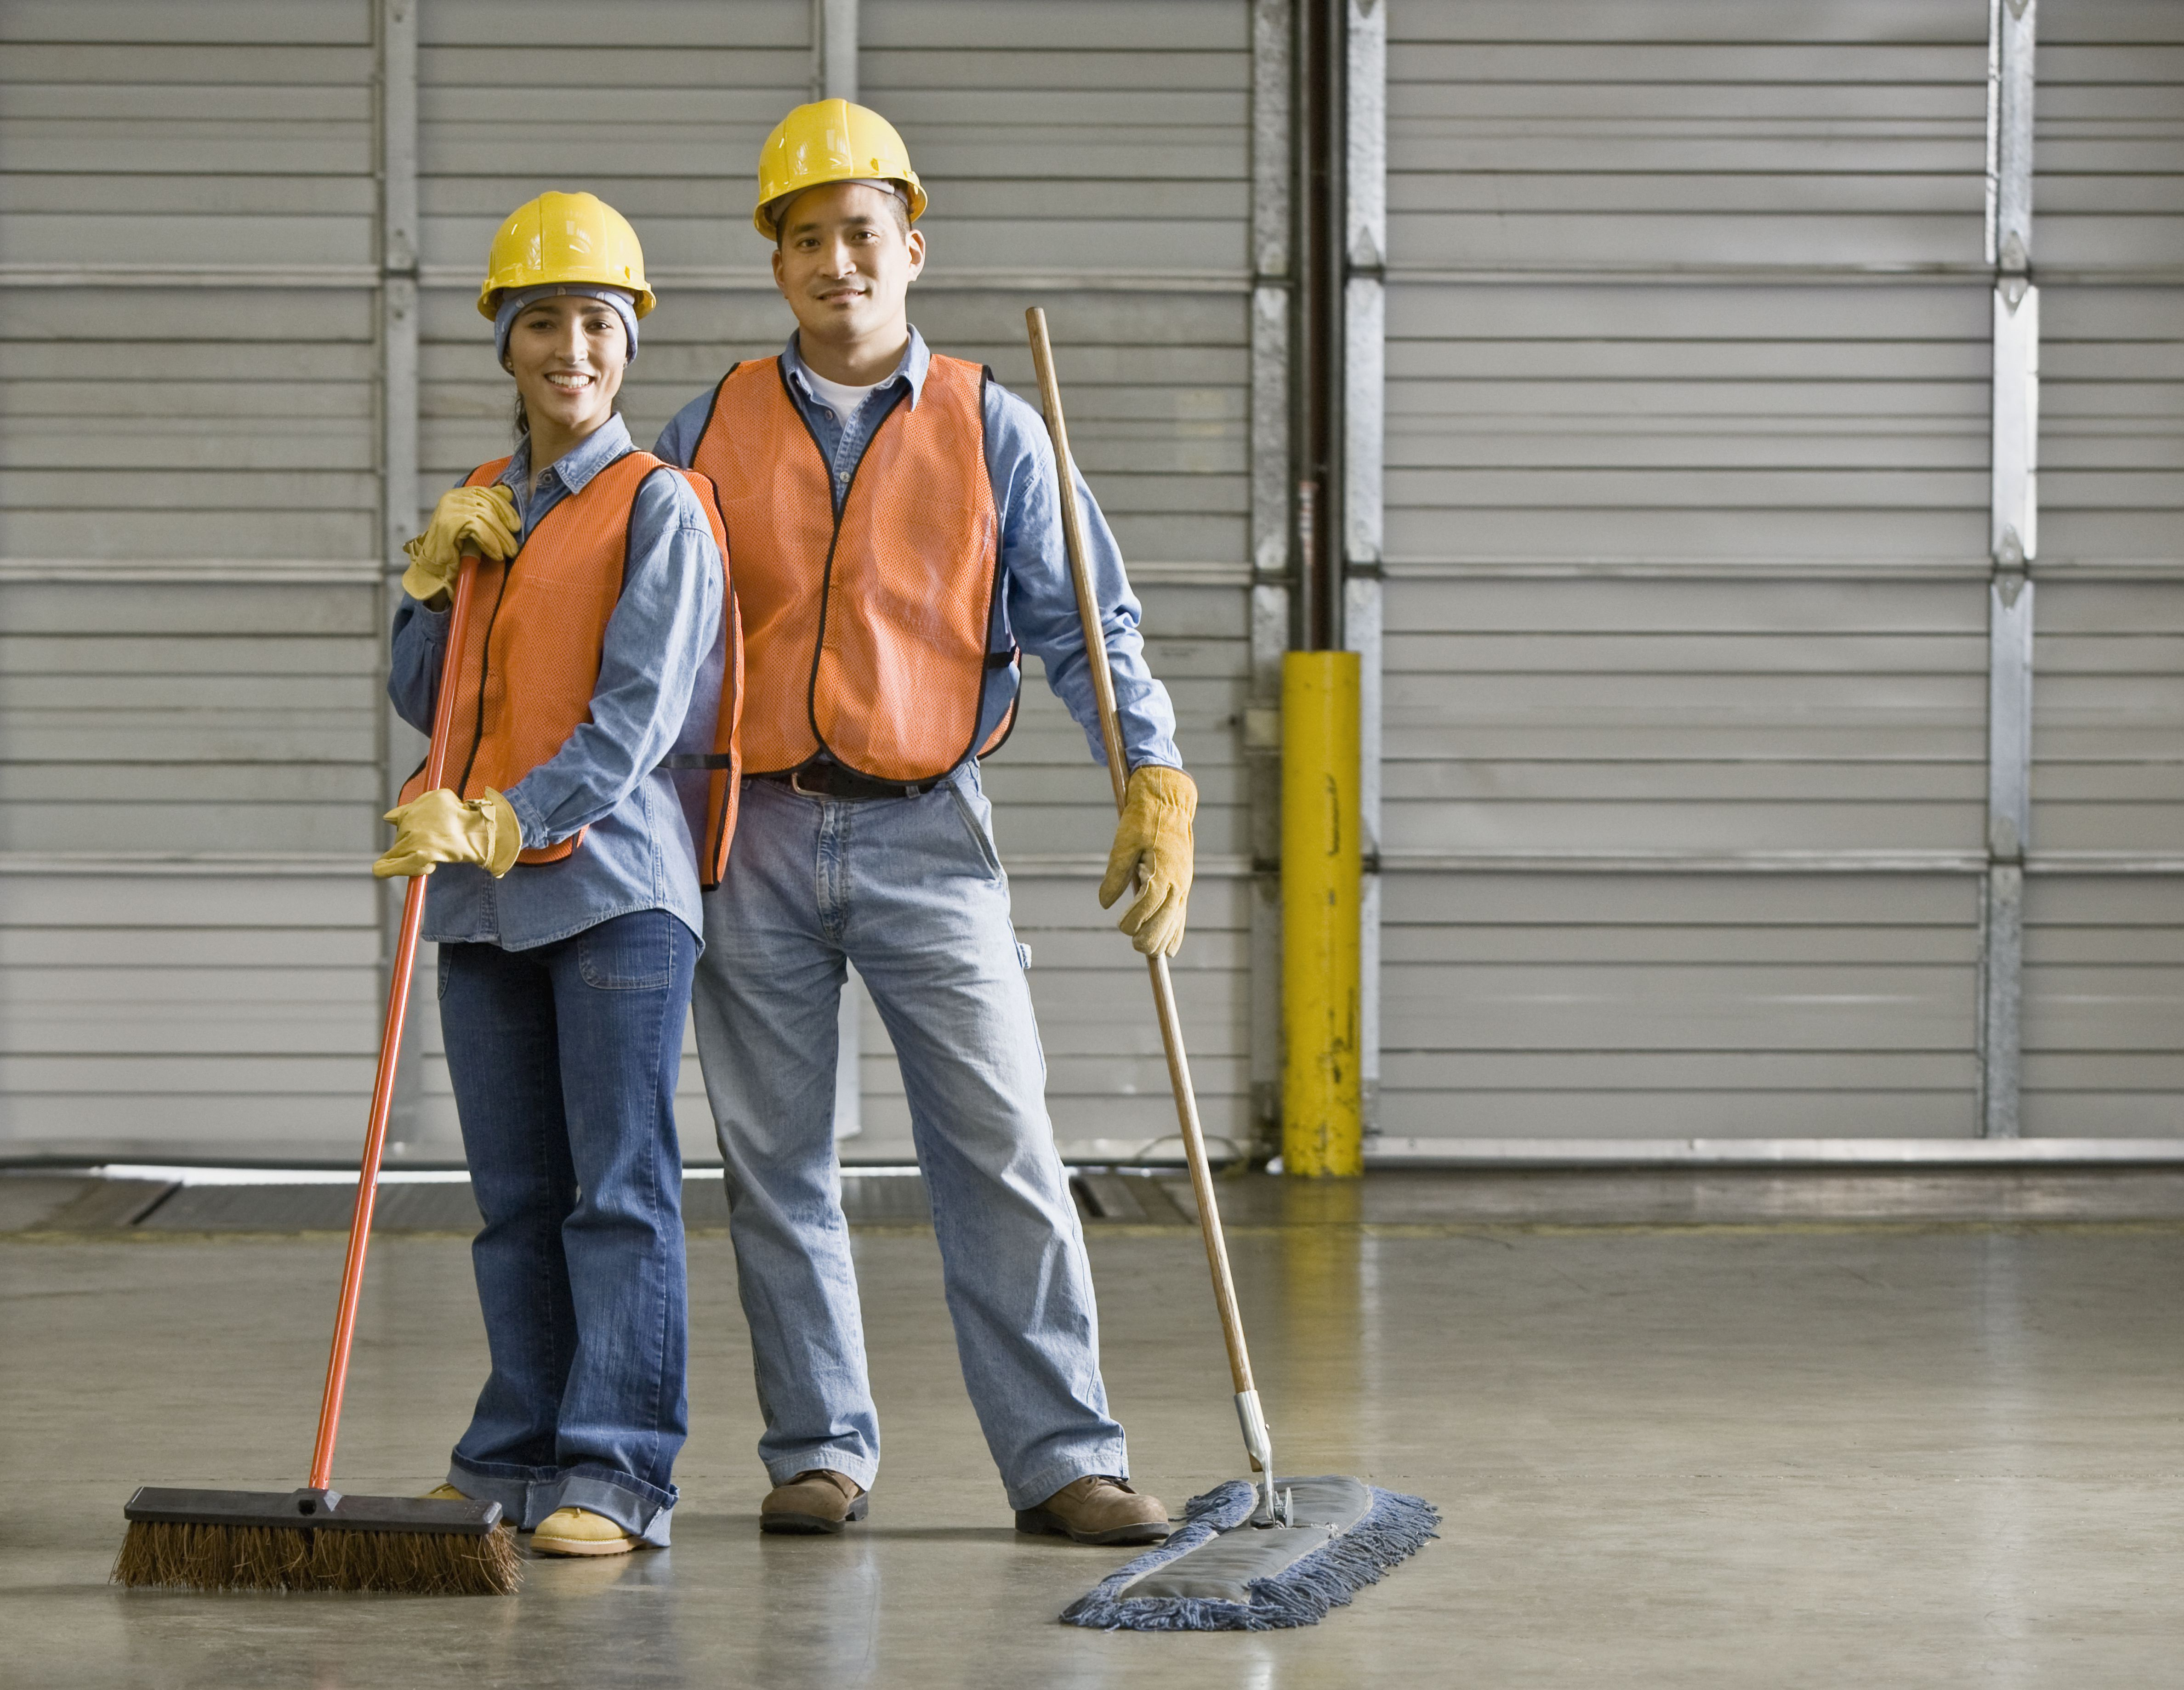 Warehouse workers holding brooms